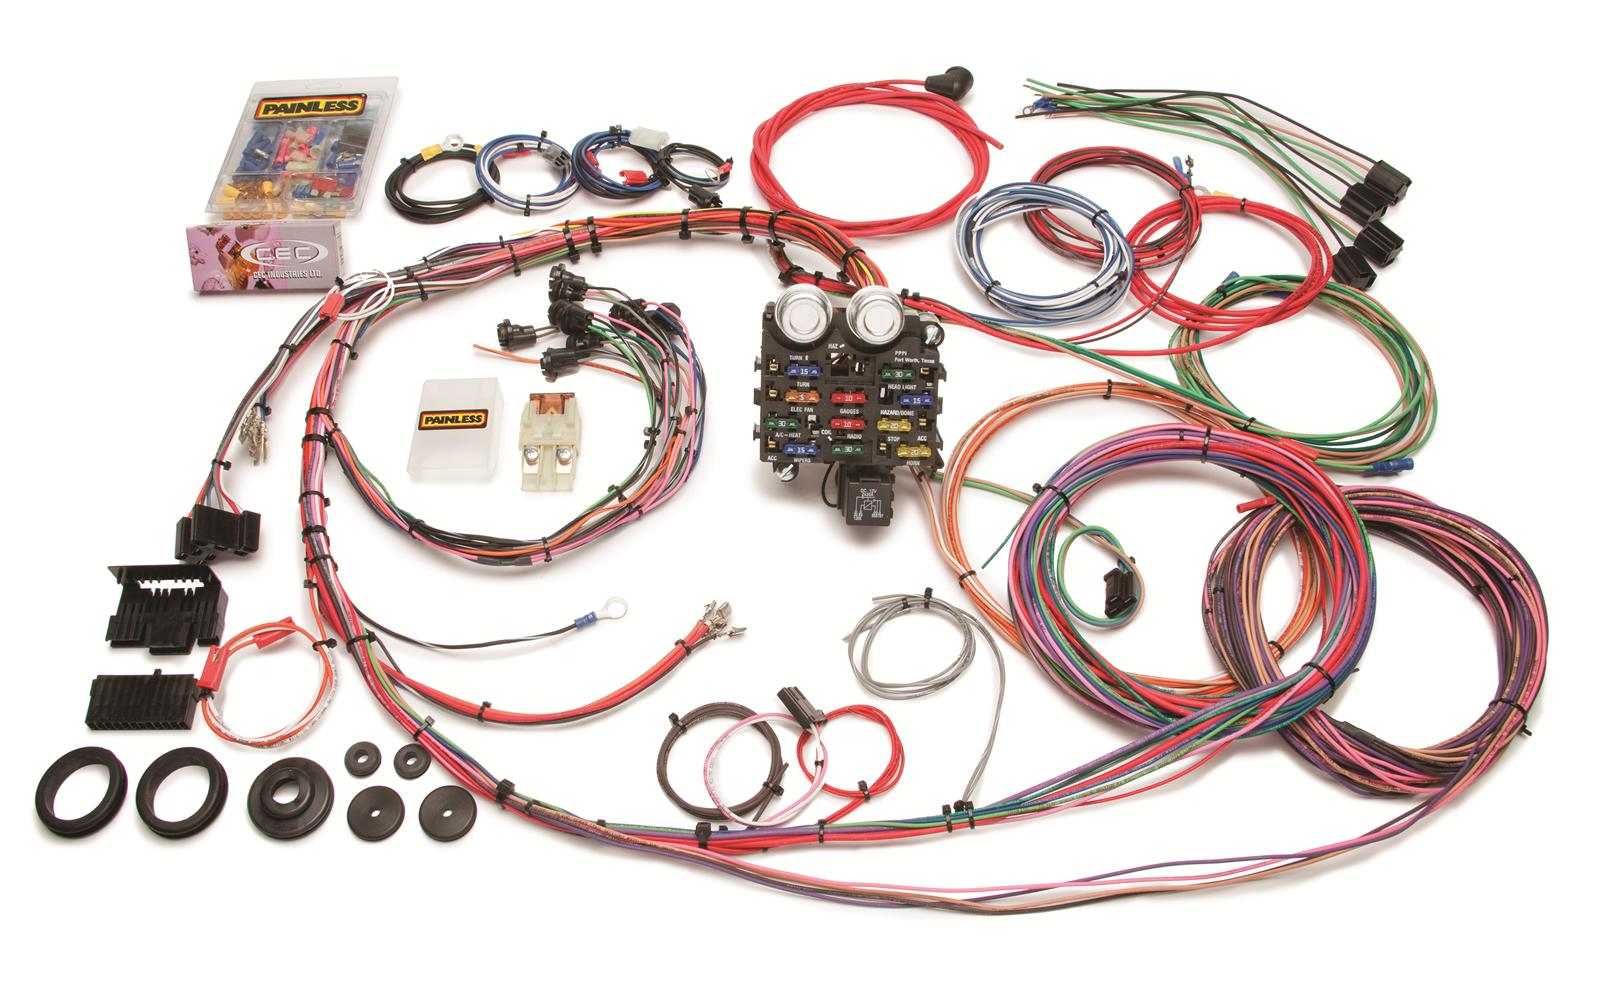 prf 10112_xl painless performance 19 circuit gmc chevy truck harnesses 10112 gm truck wiring harness at reclaimingppi.co